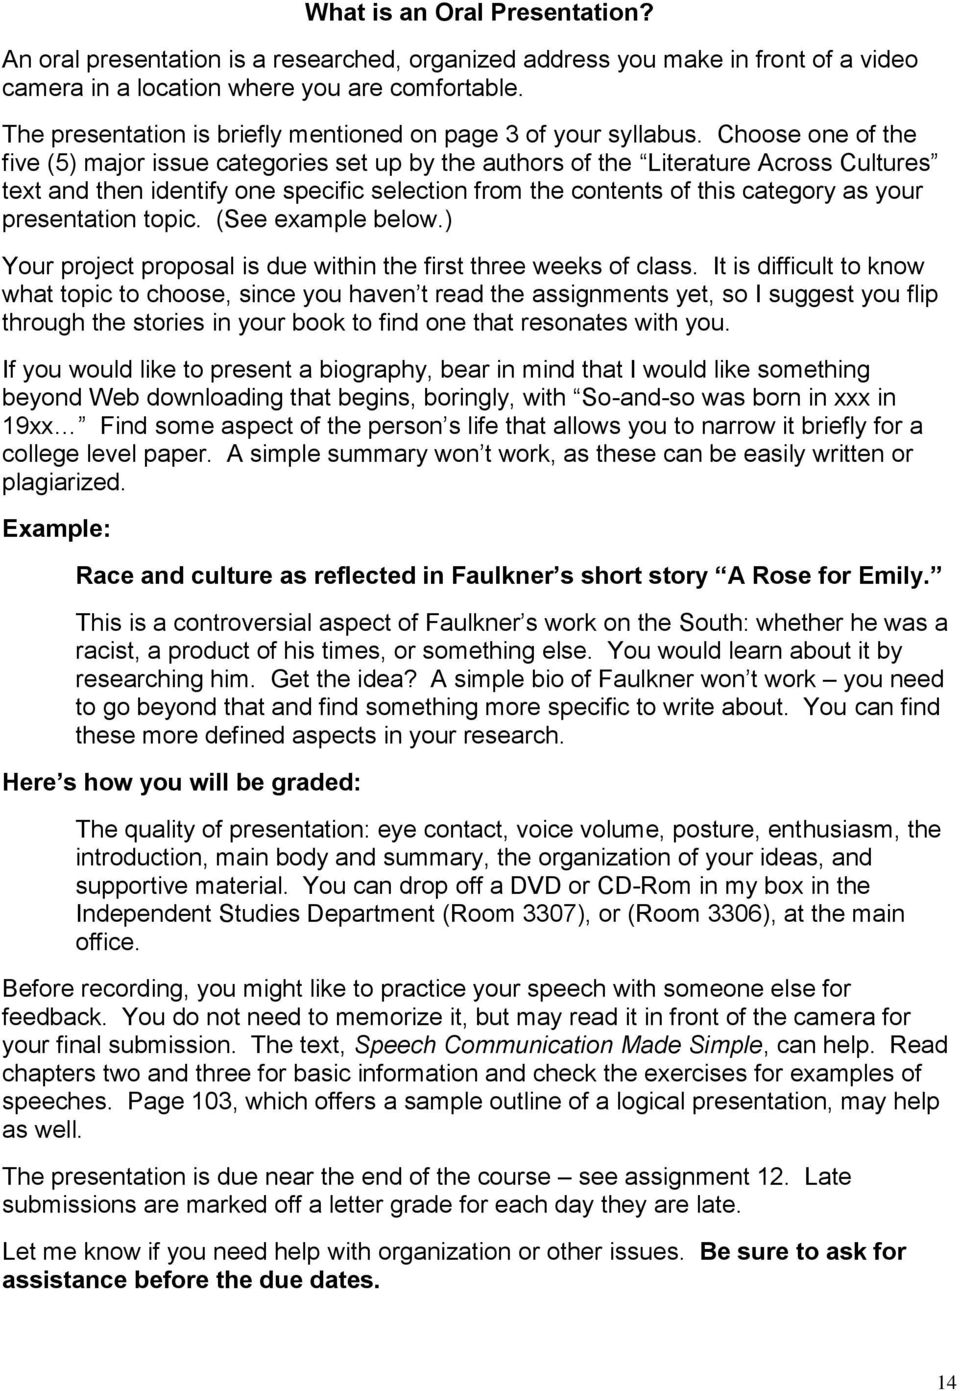 nike social and ethical issues essay Nike- ethical issues nike an ethical issue i essay cost of manufacturing with the need to meet the ethical and social expectations of.